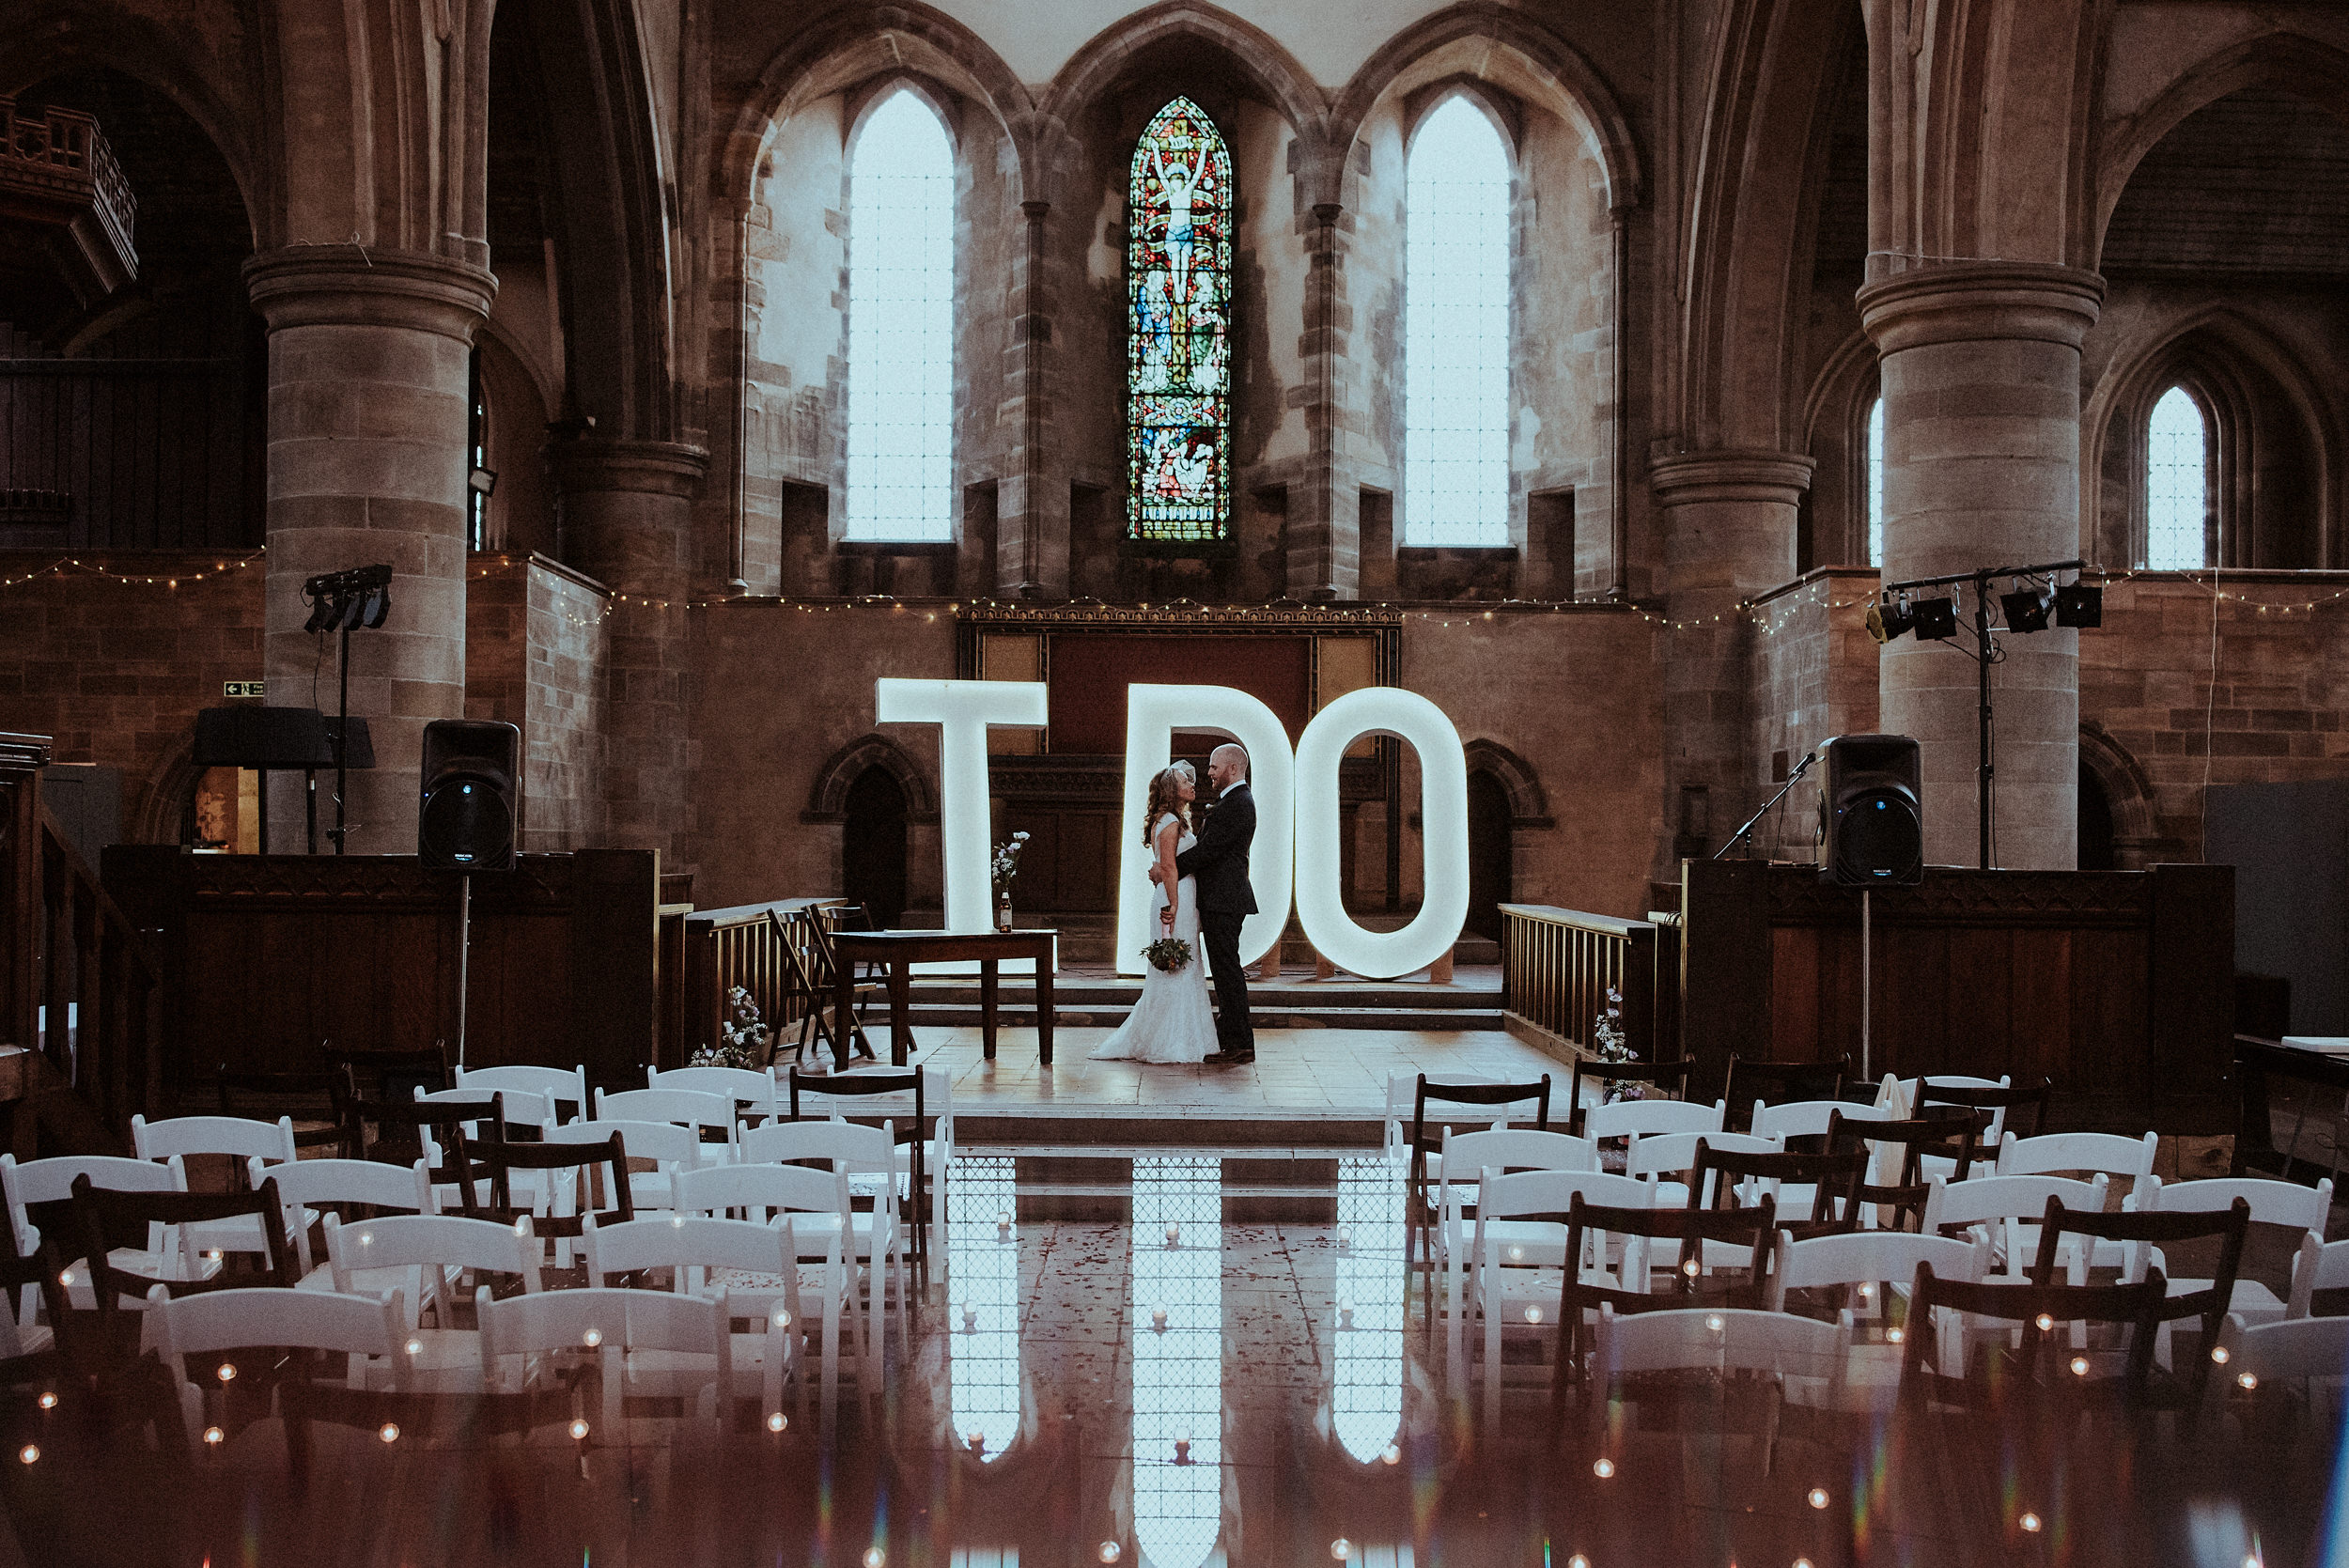 A wedding in the famous re purposed church The Left Bank Leeds. Stained glass & light up letters frame one of the most picturesque alternative wedding venues. Featured on Junebug Weddings.